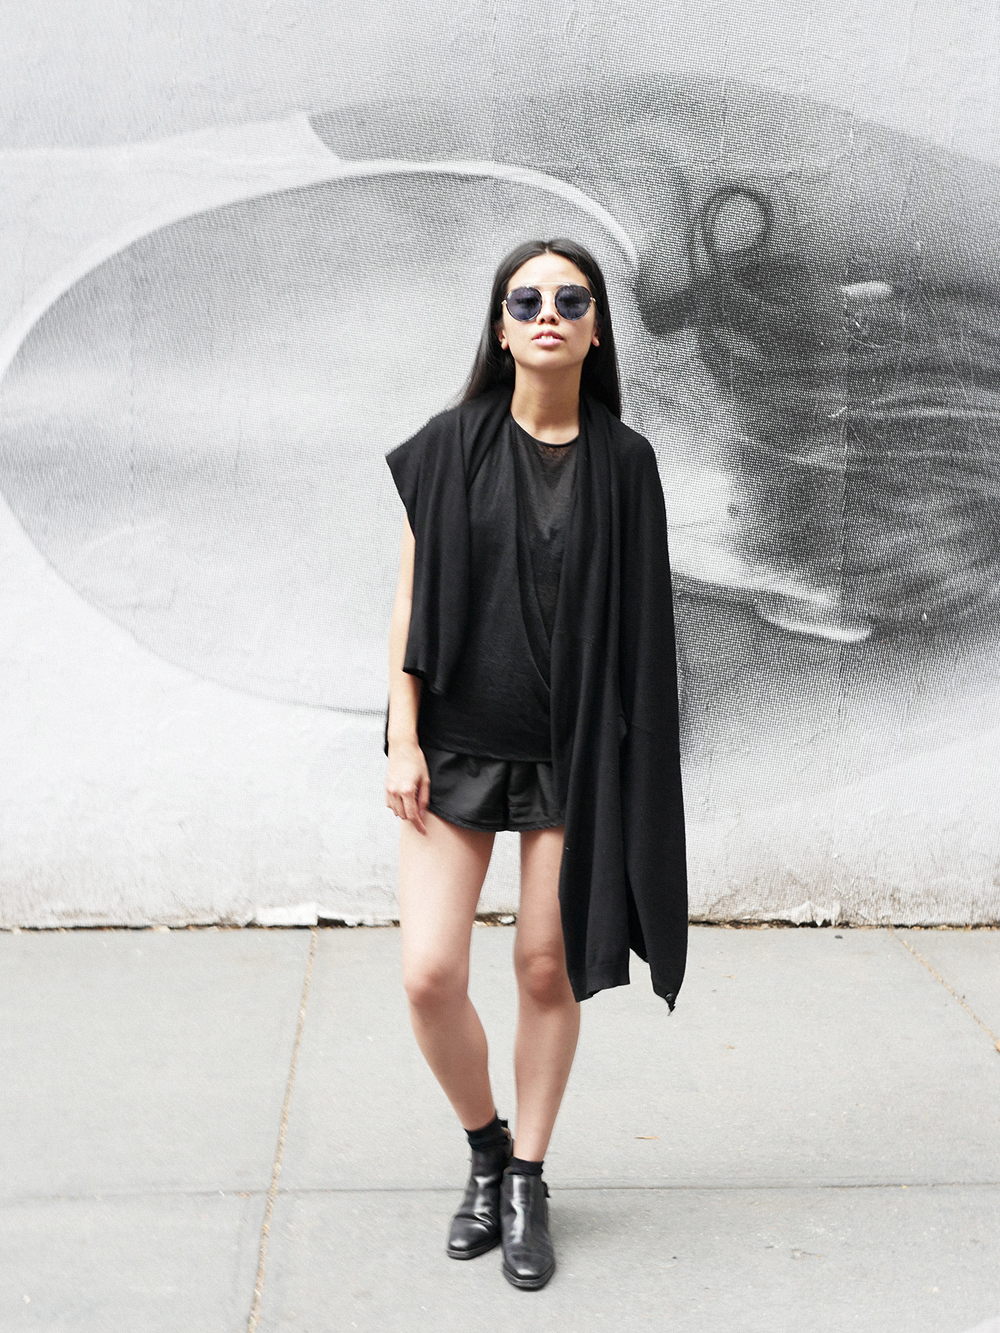 IHEARTALICE.DE – Fashion & Travel Blog: All Black Everything Look wearing Helmut Lang Top, Chelsea Boots